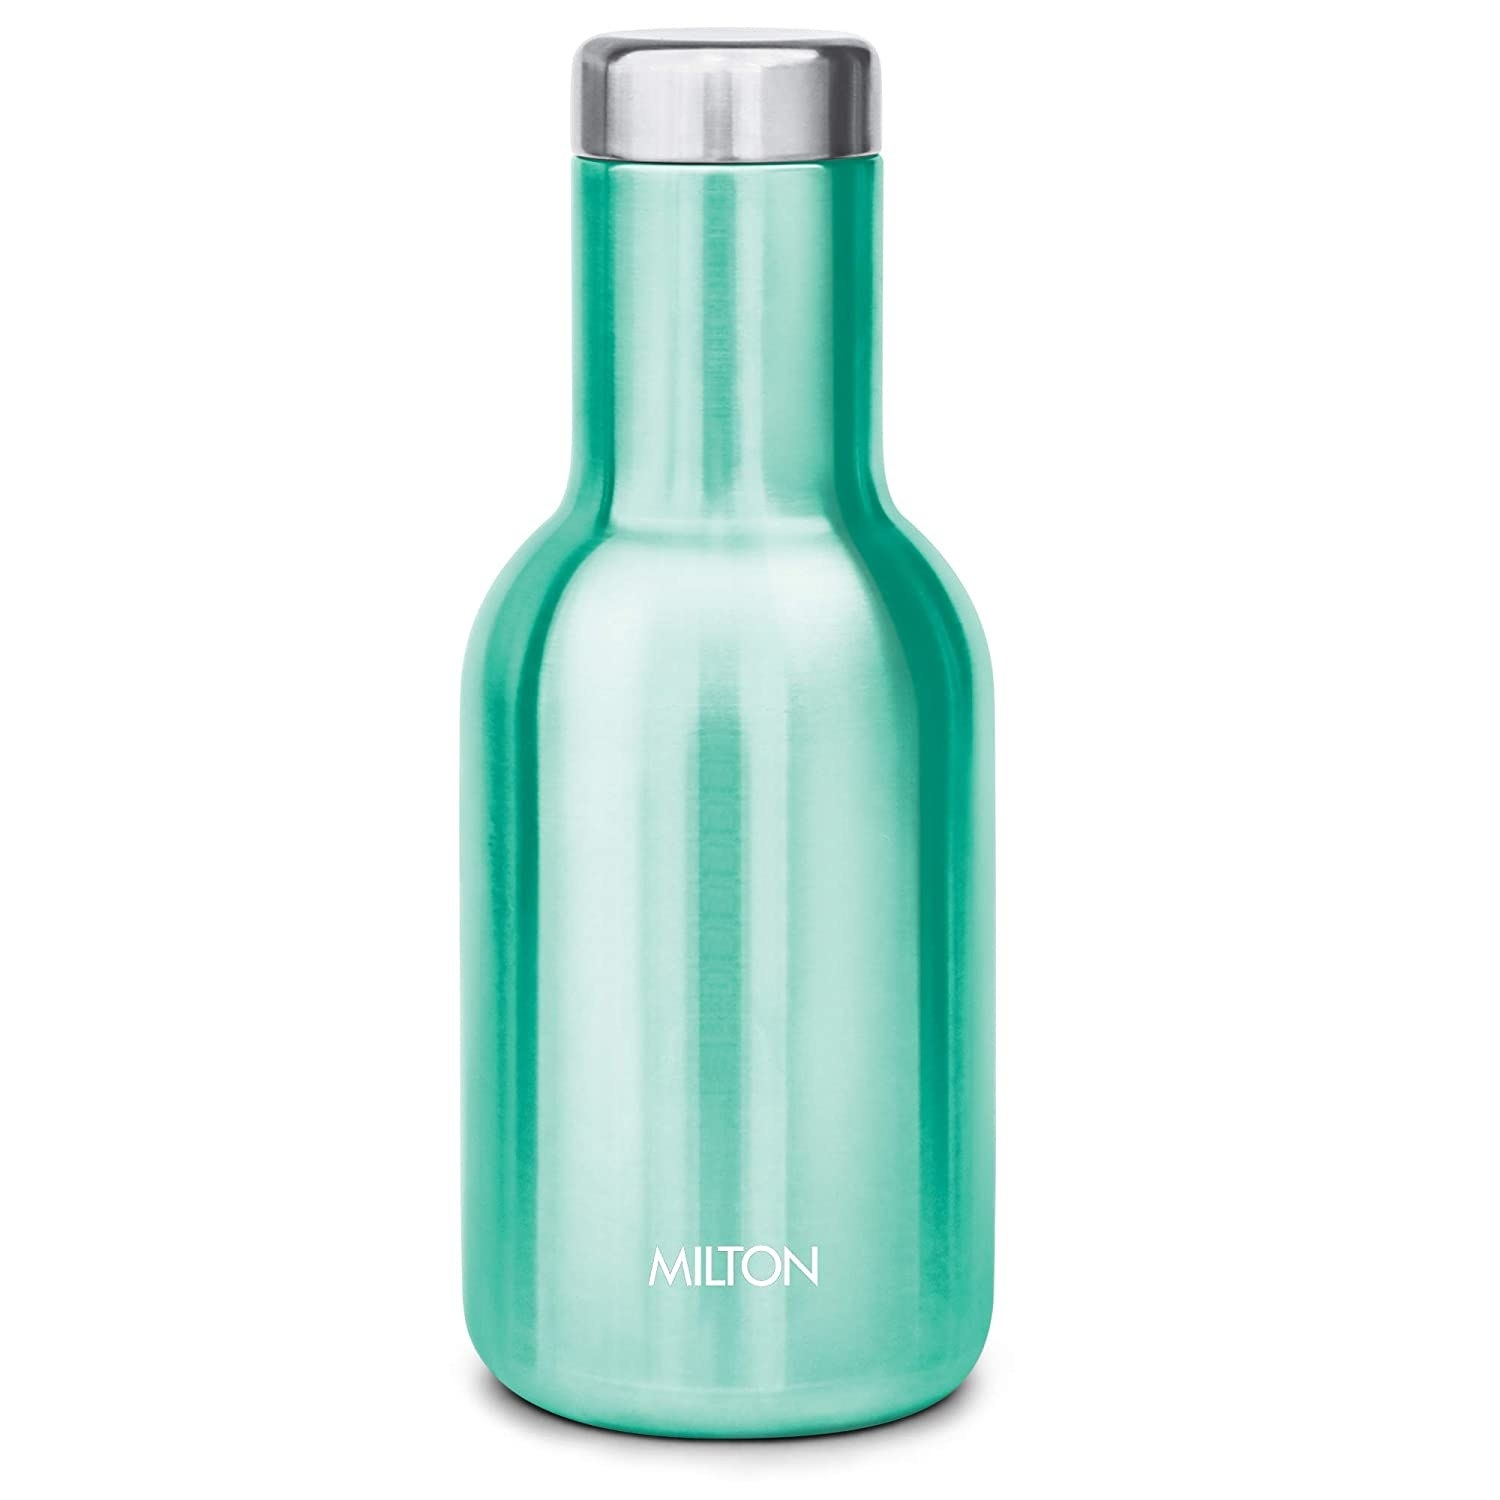 A green flask